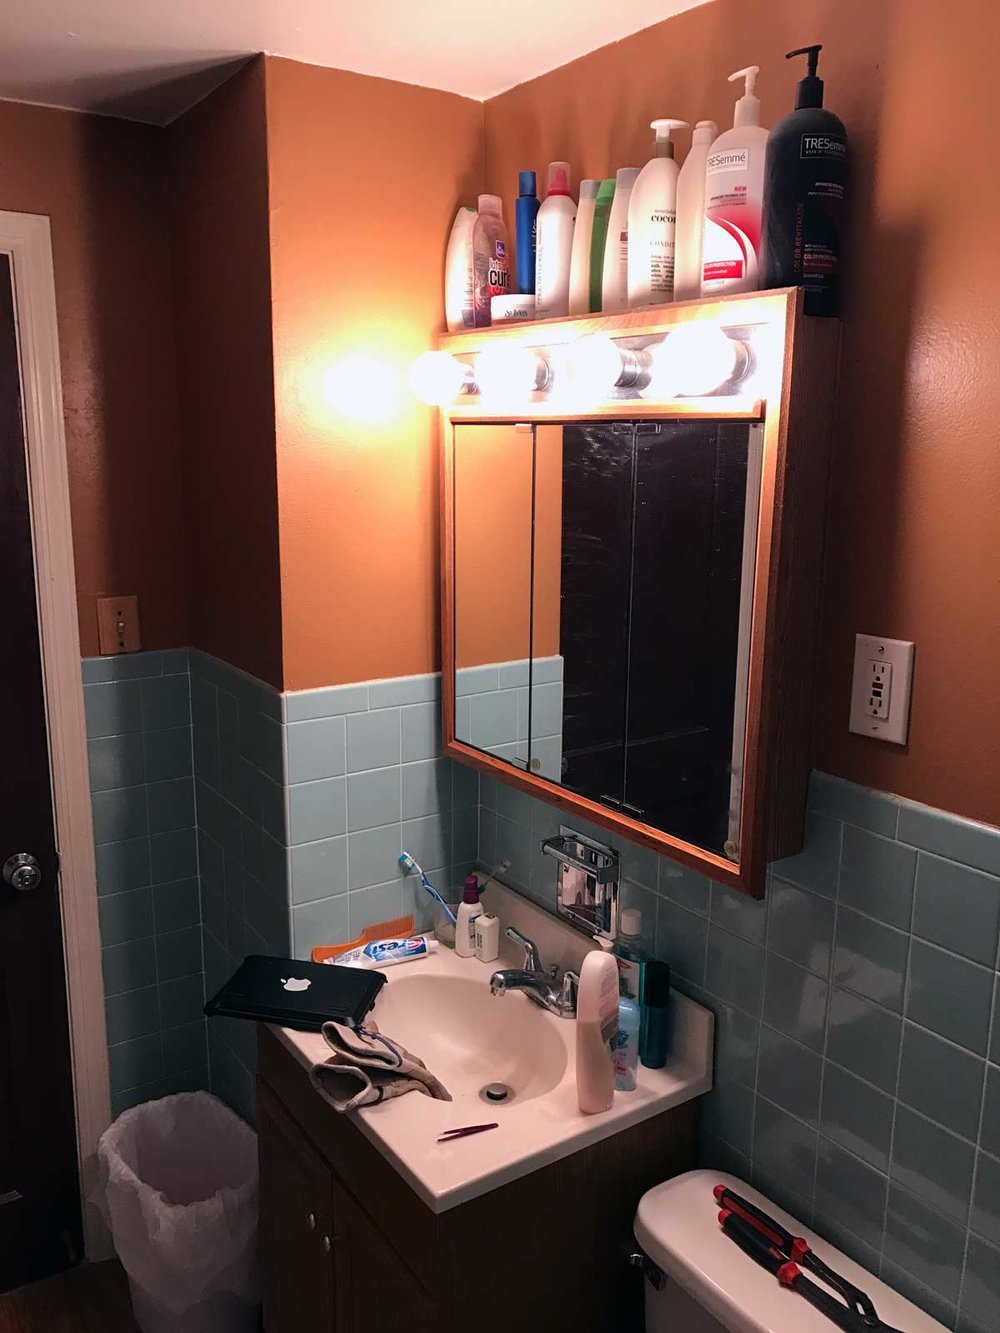 15-Day-Bathroom-Renovation-03.jpg